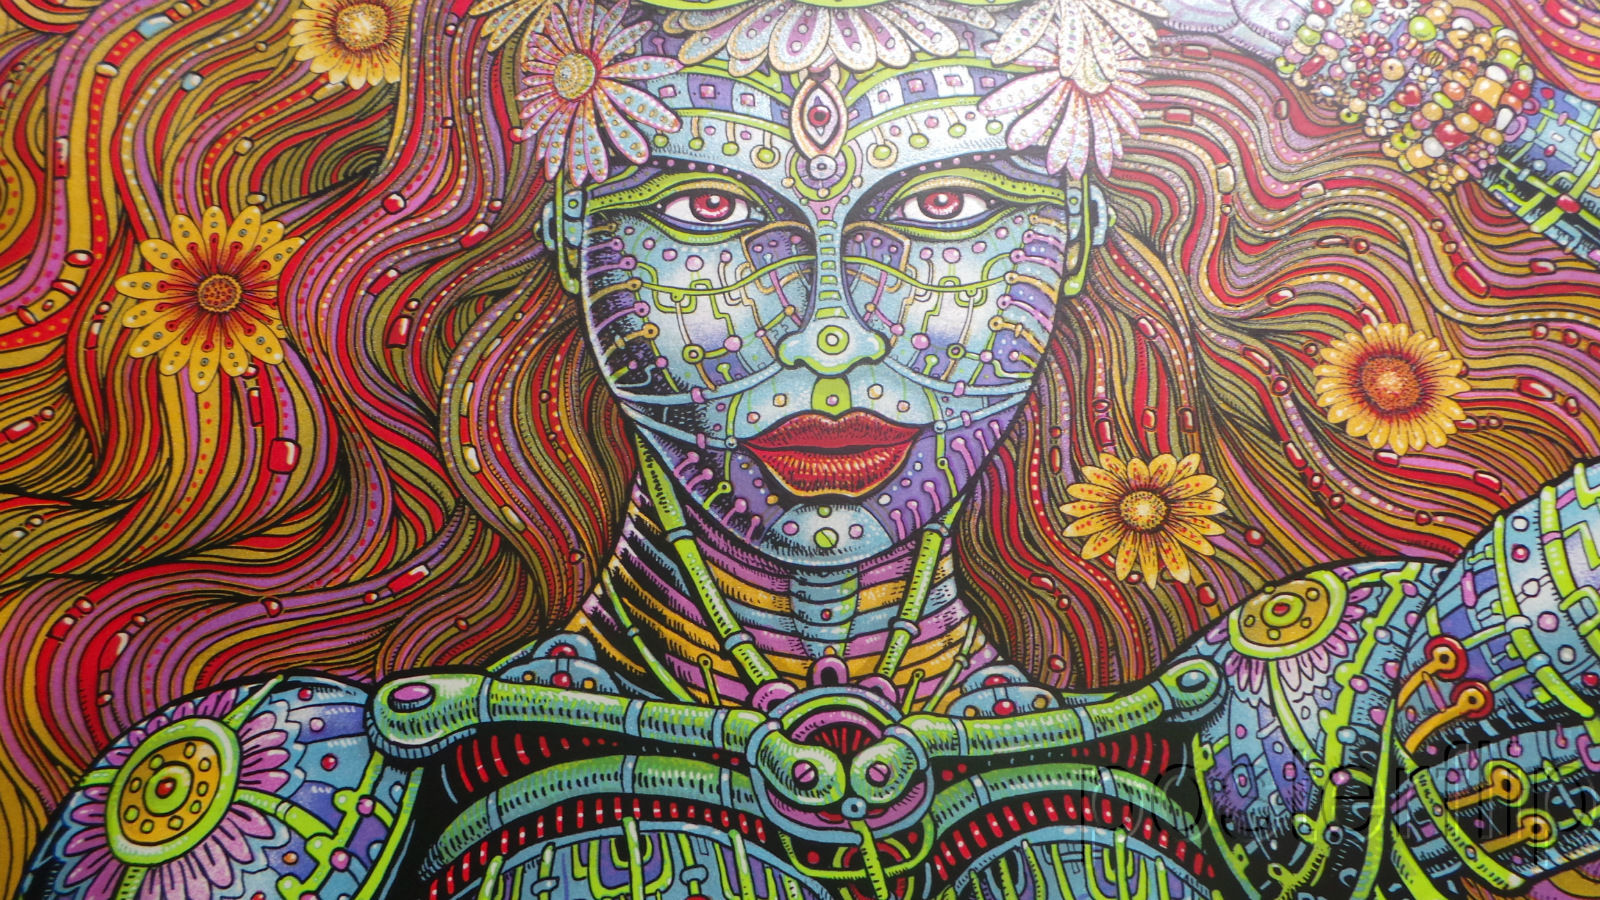 Electric Daisy Carnival 2016 Emek Screenprint Poster xx/100 Signed/Numbered